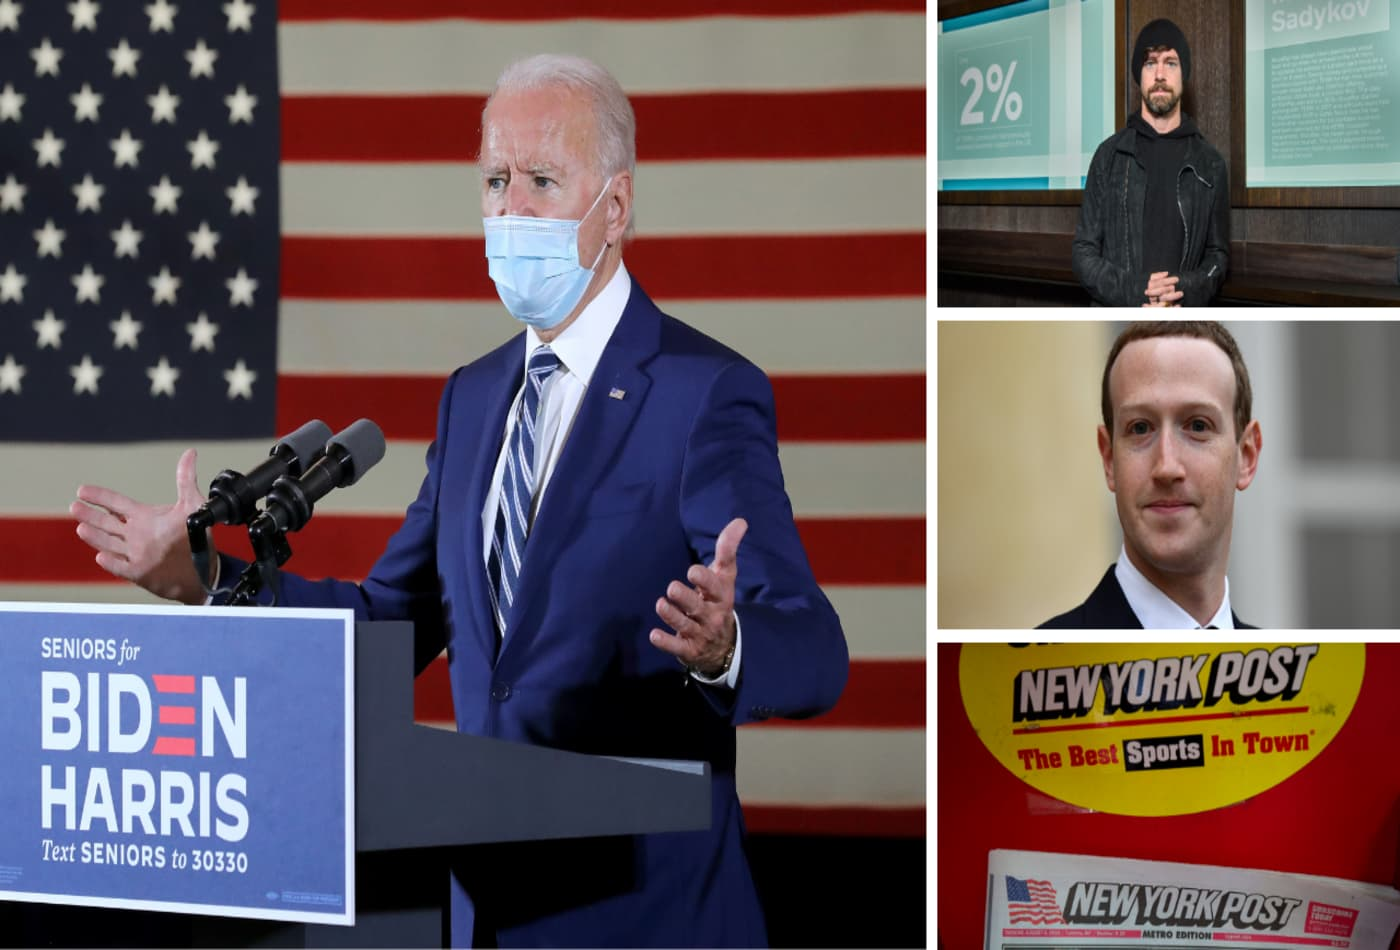 Were Facebook, Twitter right to restrict distribution of the New York Post story about Biden?